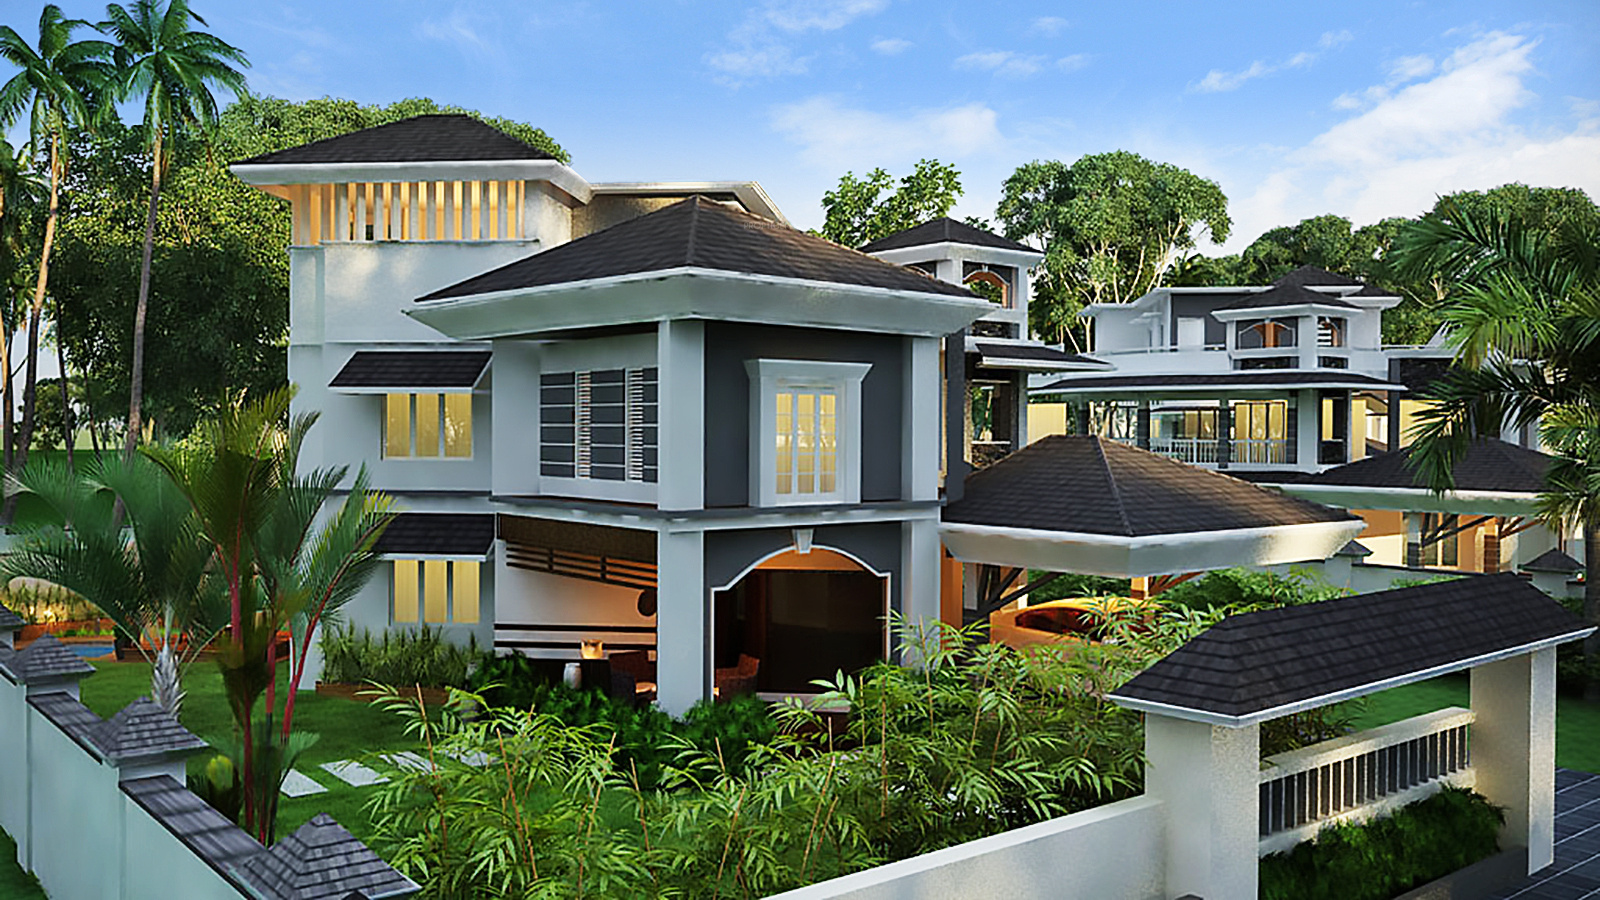 4748 sq ft 4 bhk 6t villa for sale in anna properties for Villa elevation photos